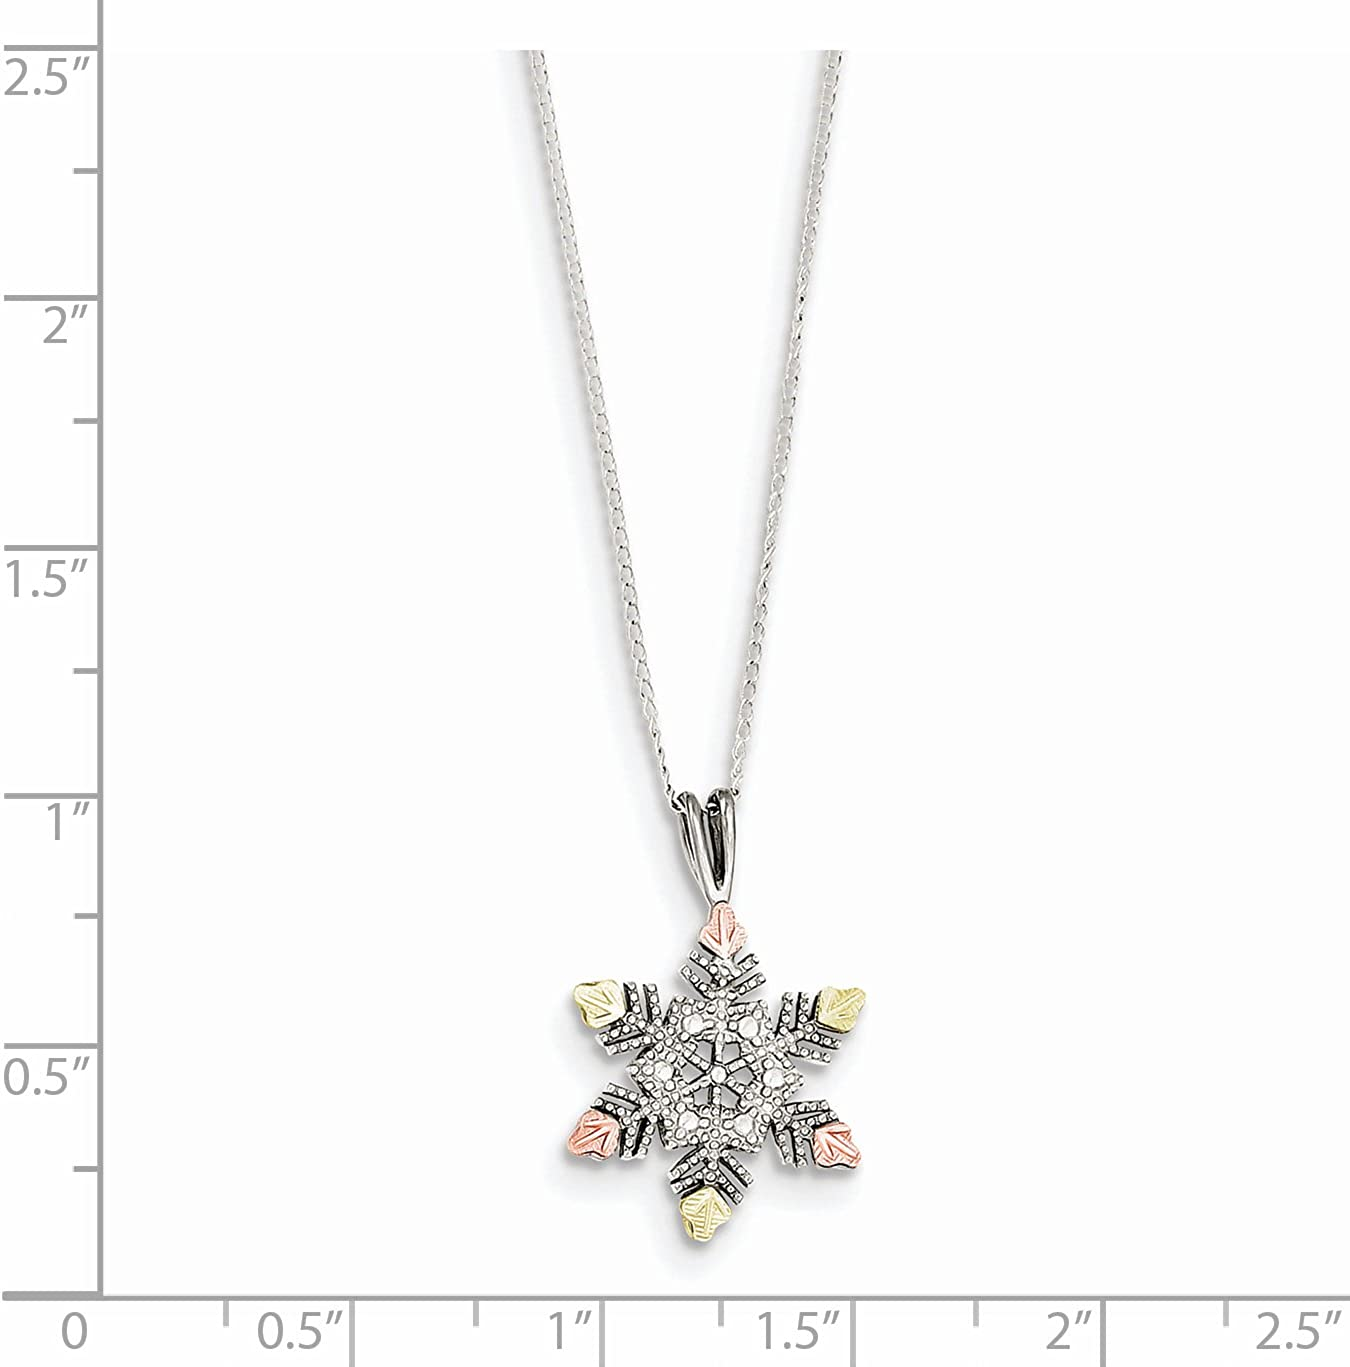 925 Sterling Silver and 12k Gold-Plated Accents Snowflake Pendant Necklace Charm Chain